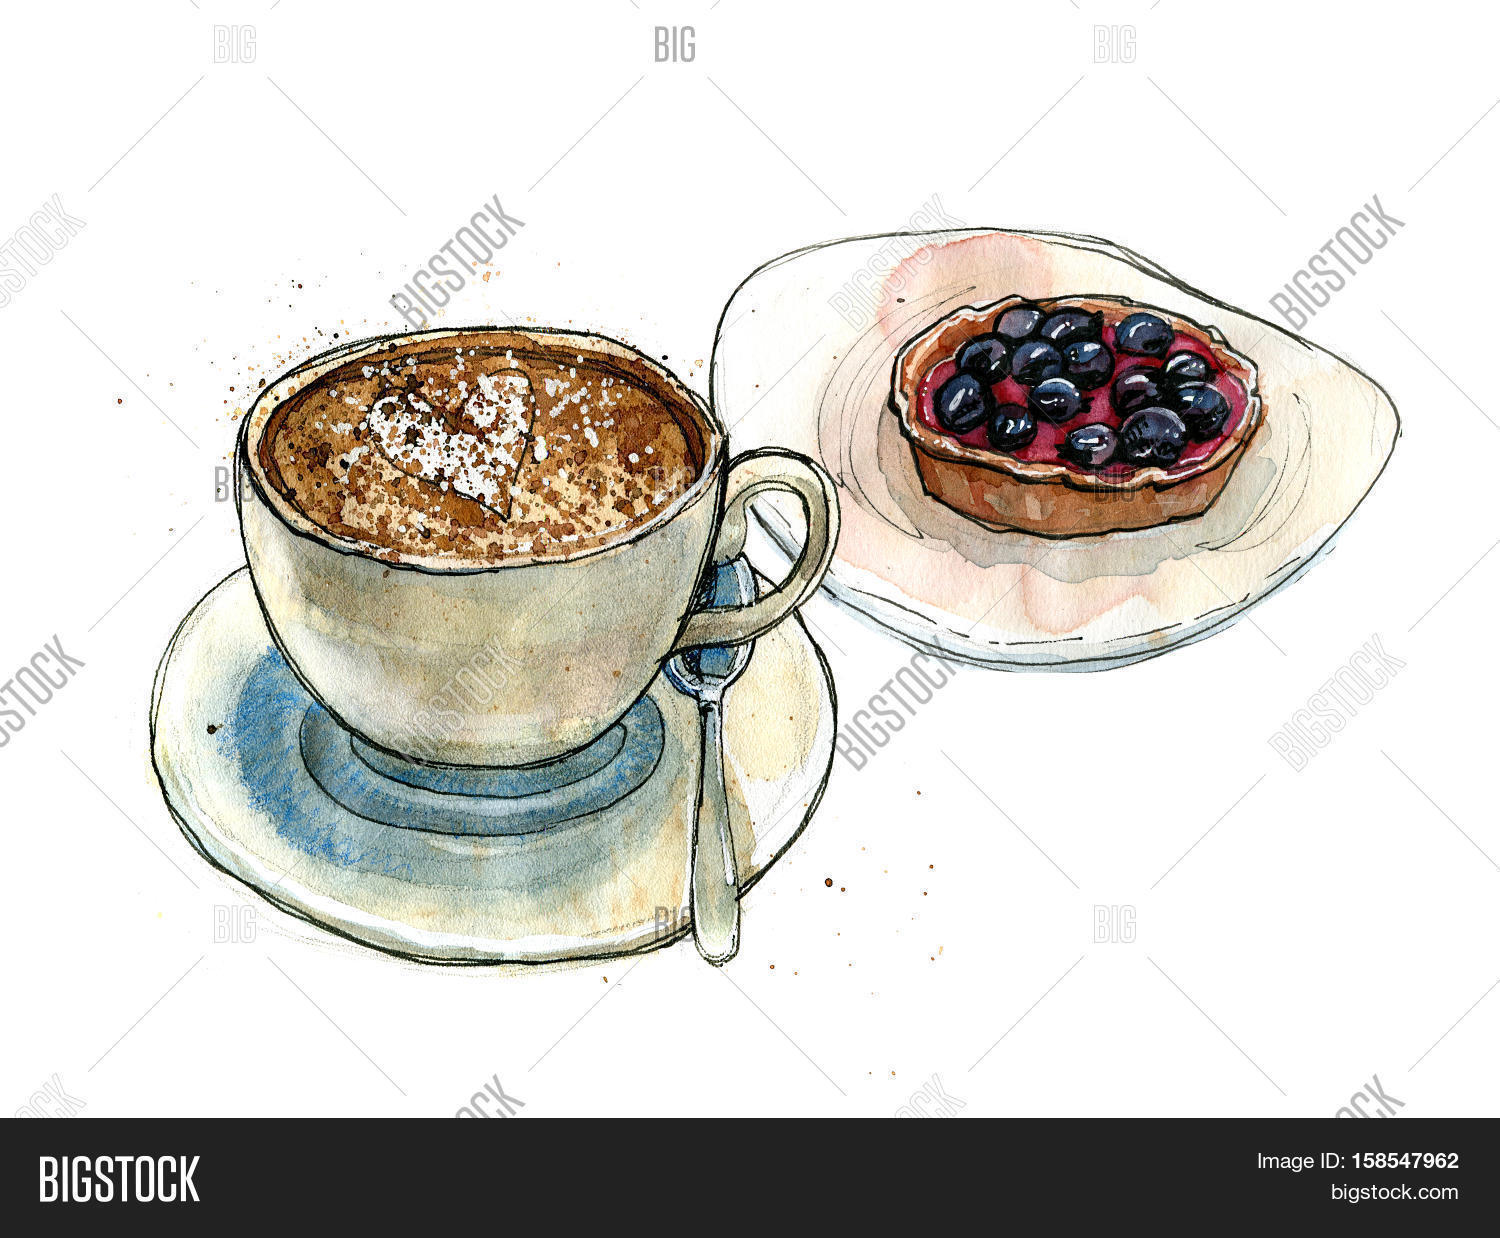 Coffee Cup Saucer Image Photo Free Trial Bigstock